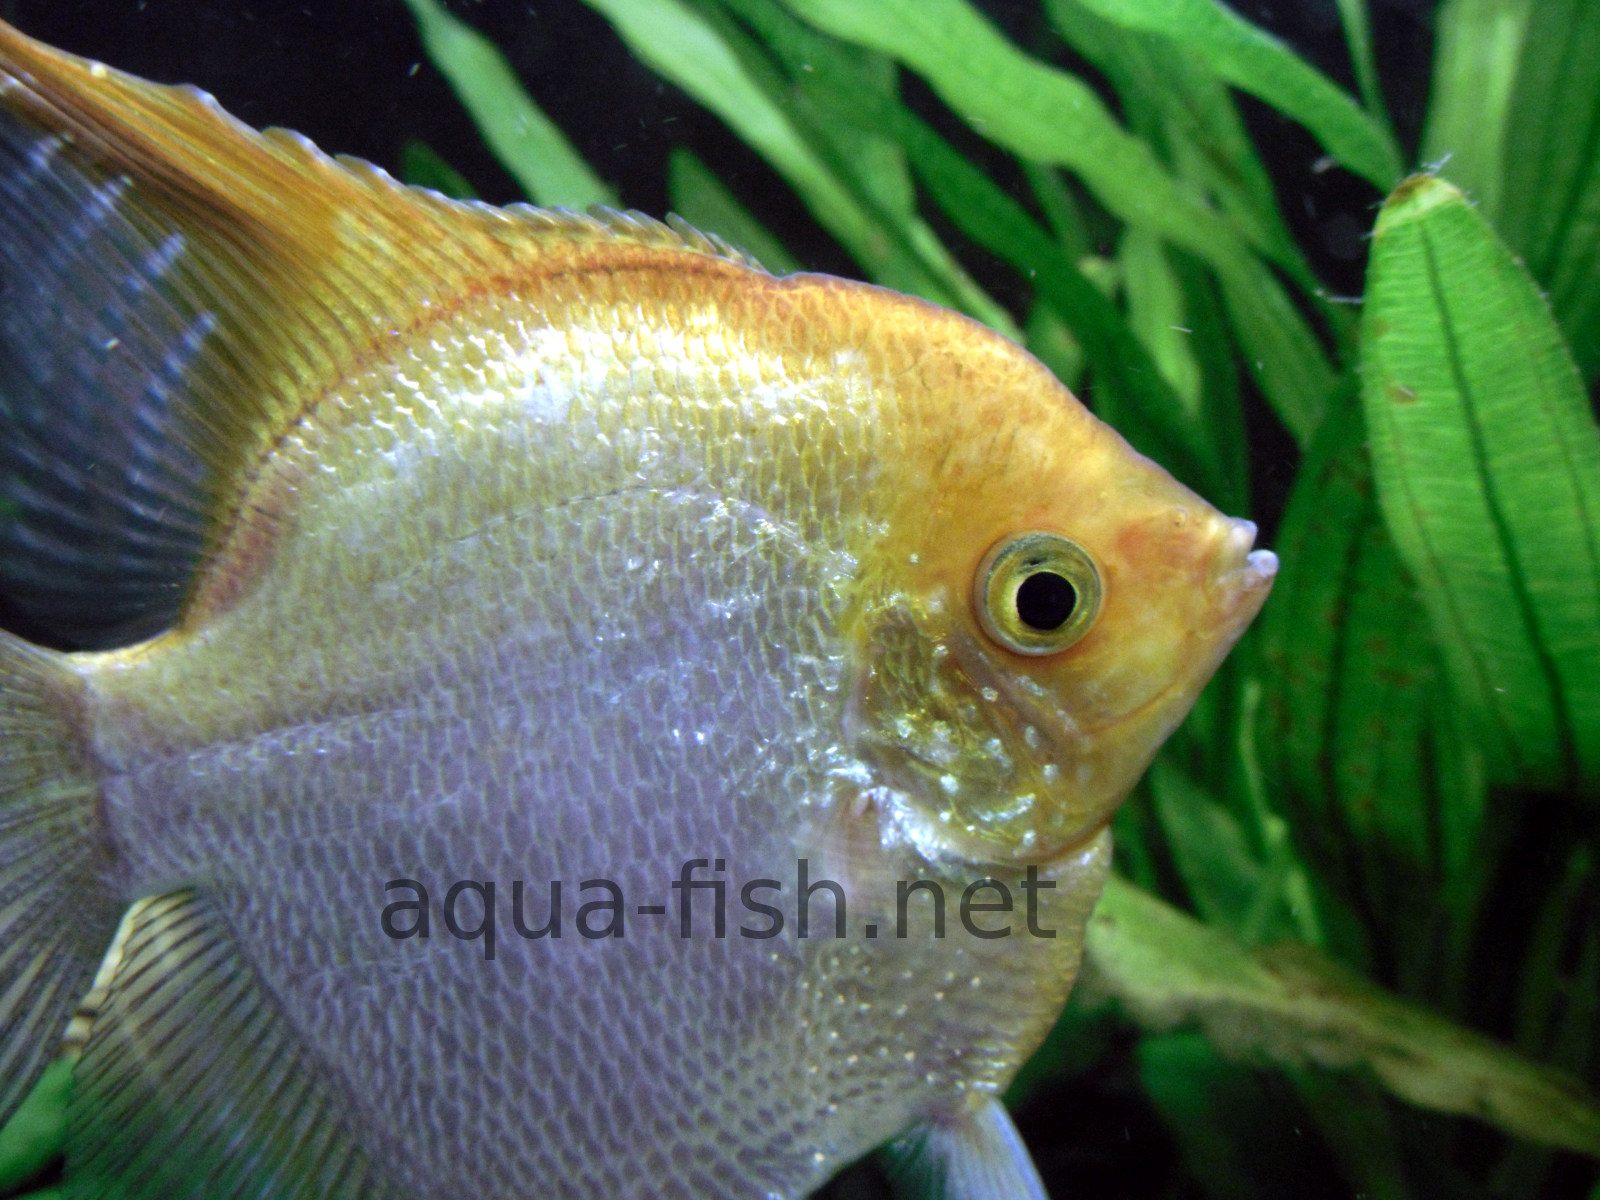 Freshwater aquarium fish silver with red fins - A Guide To Keeping And Breeding Freshwater Angelfish Which Includes Instructions On Aquarium Set Up Diseases Prevention And Pictures With Forums